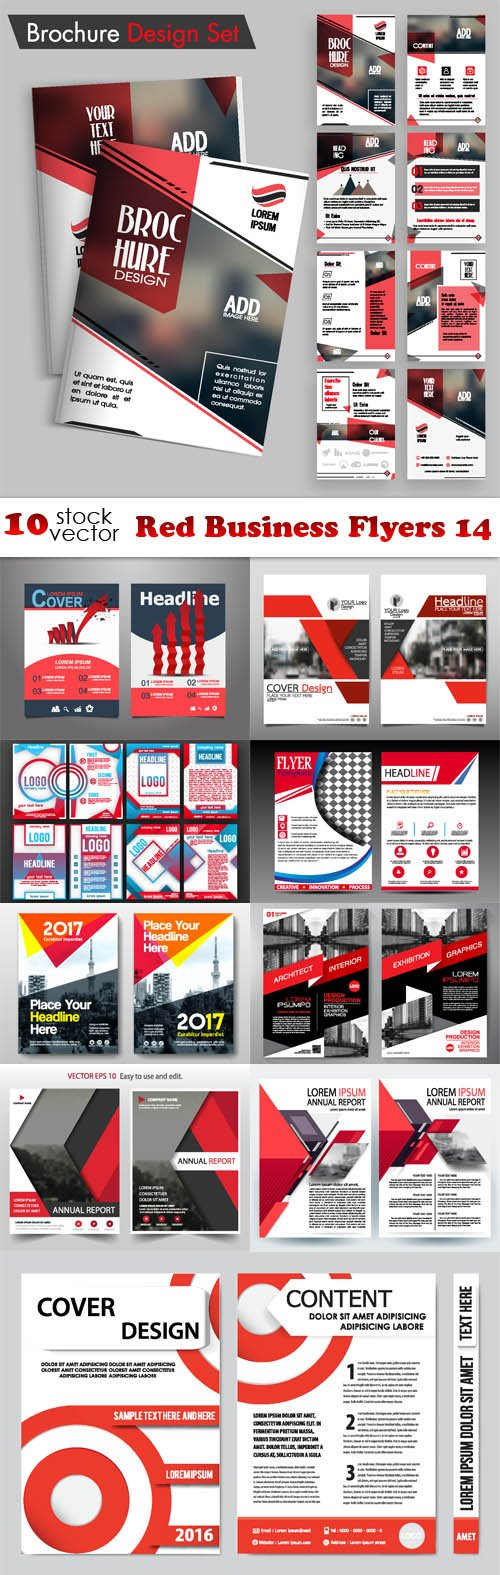 Vectors - Red Business Flyers 14